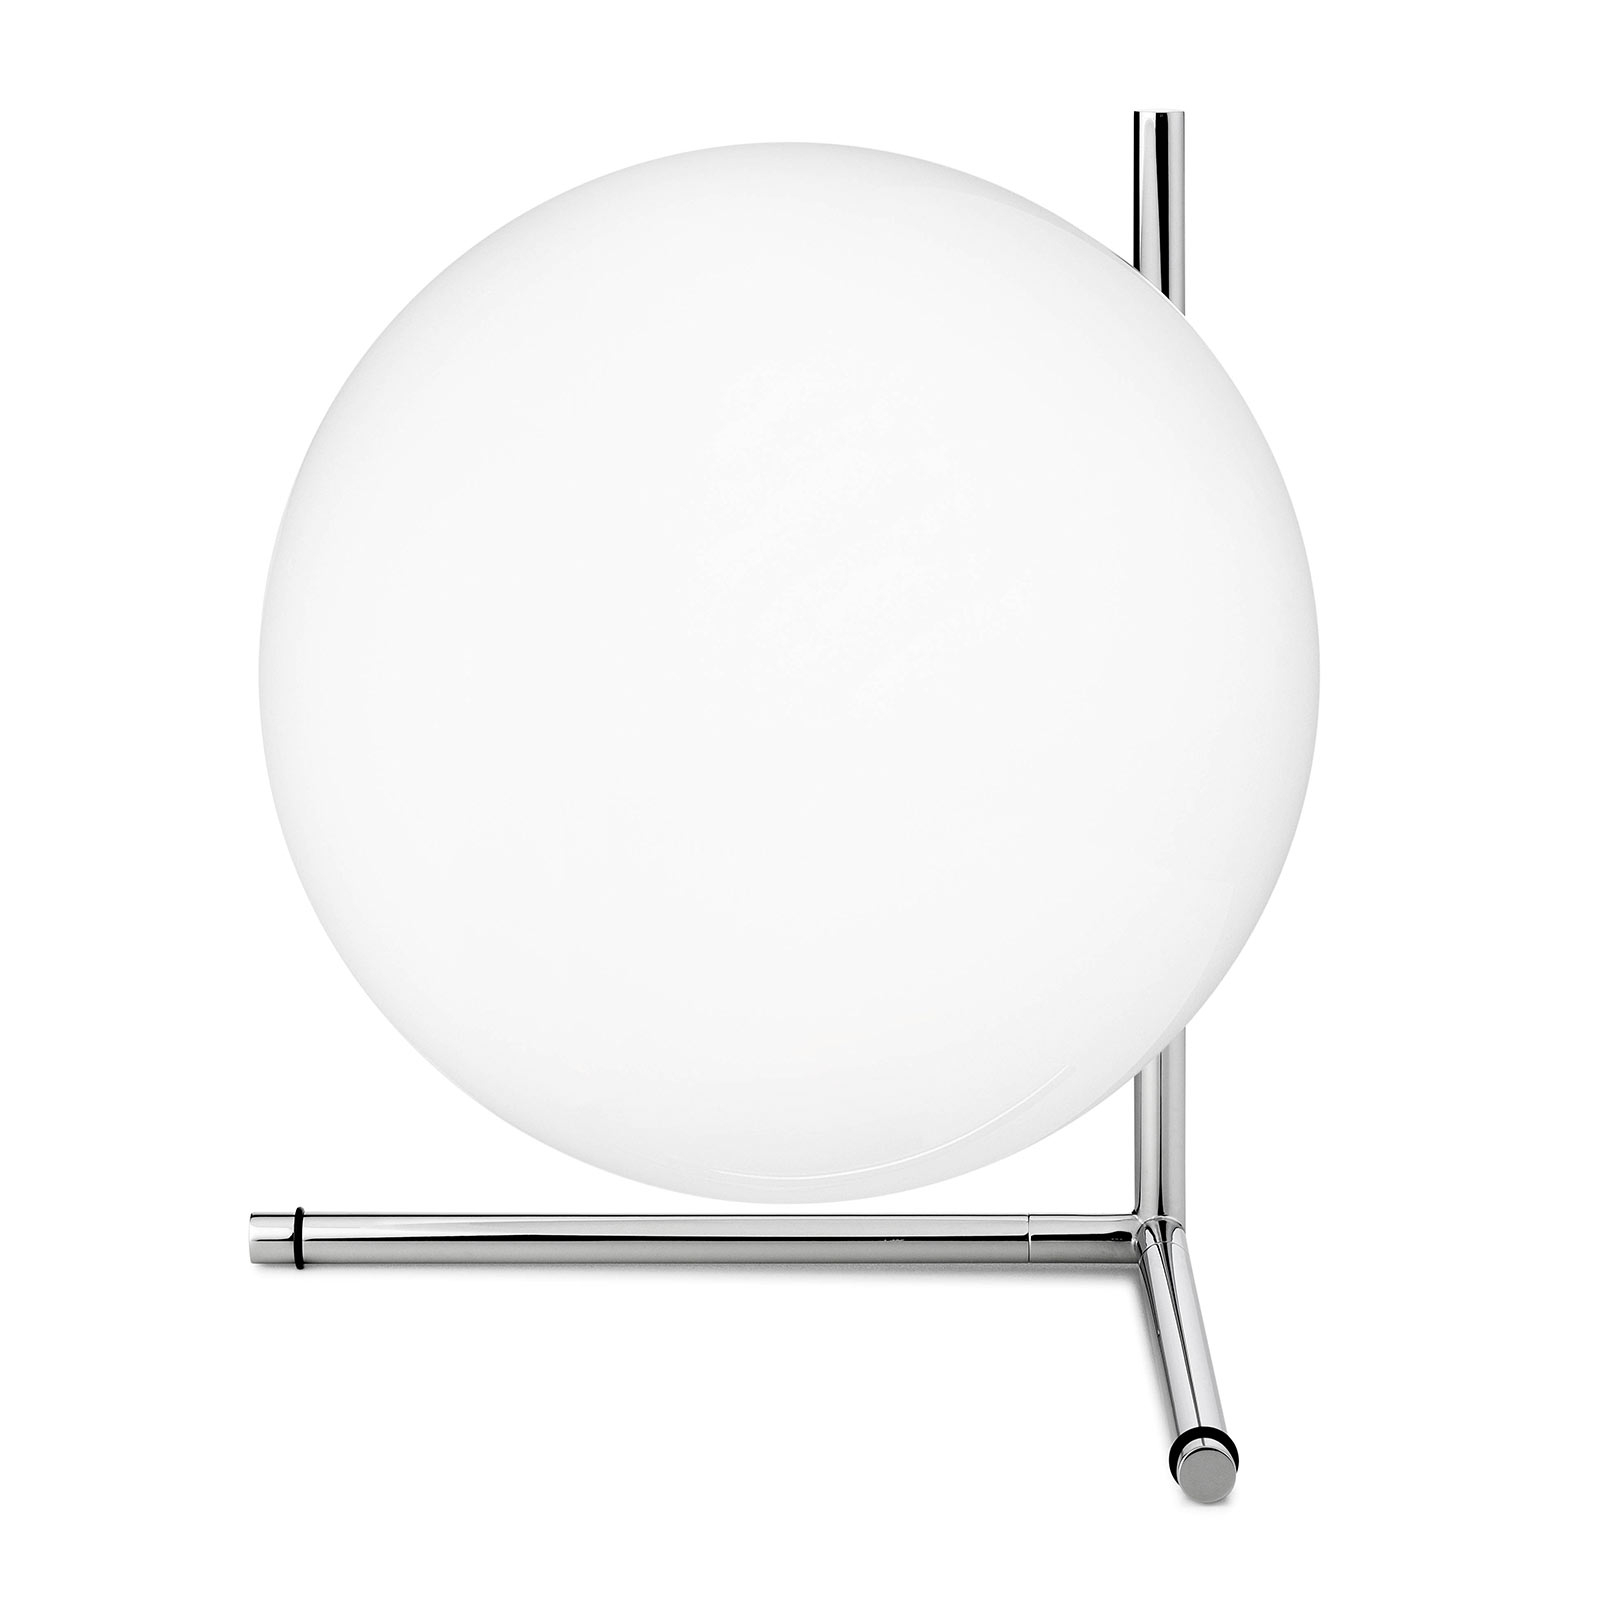 FLOS IC T2 tafellamp, chroom